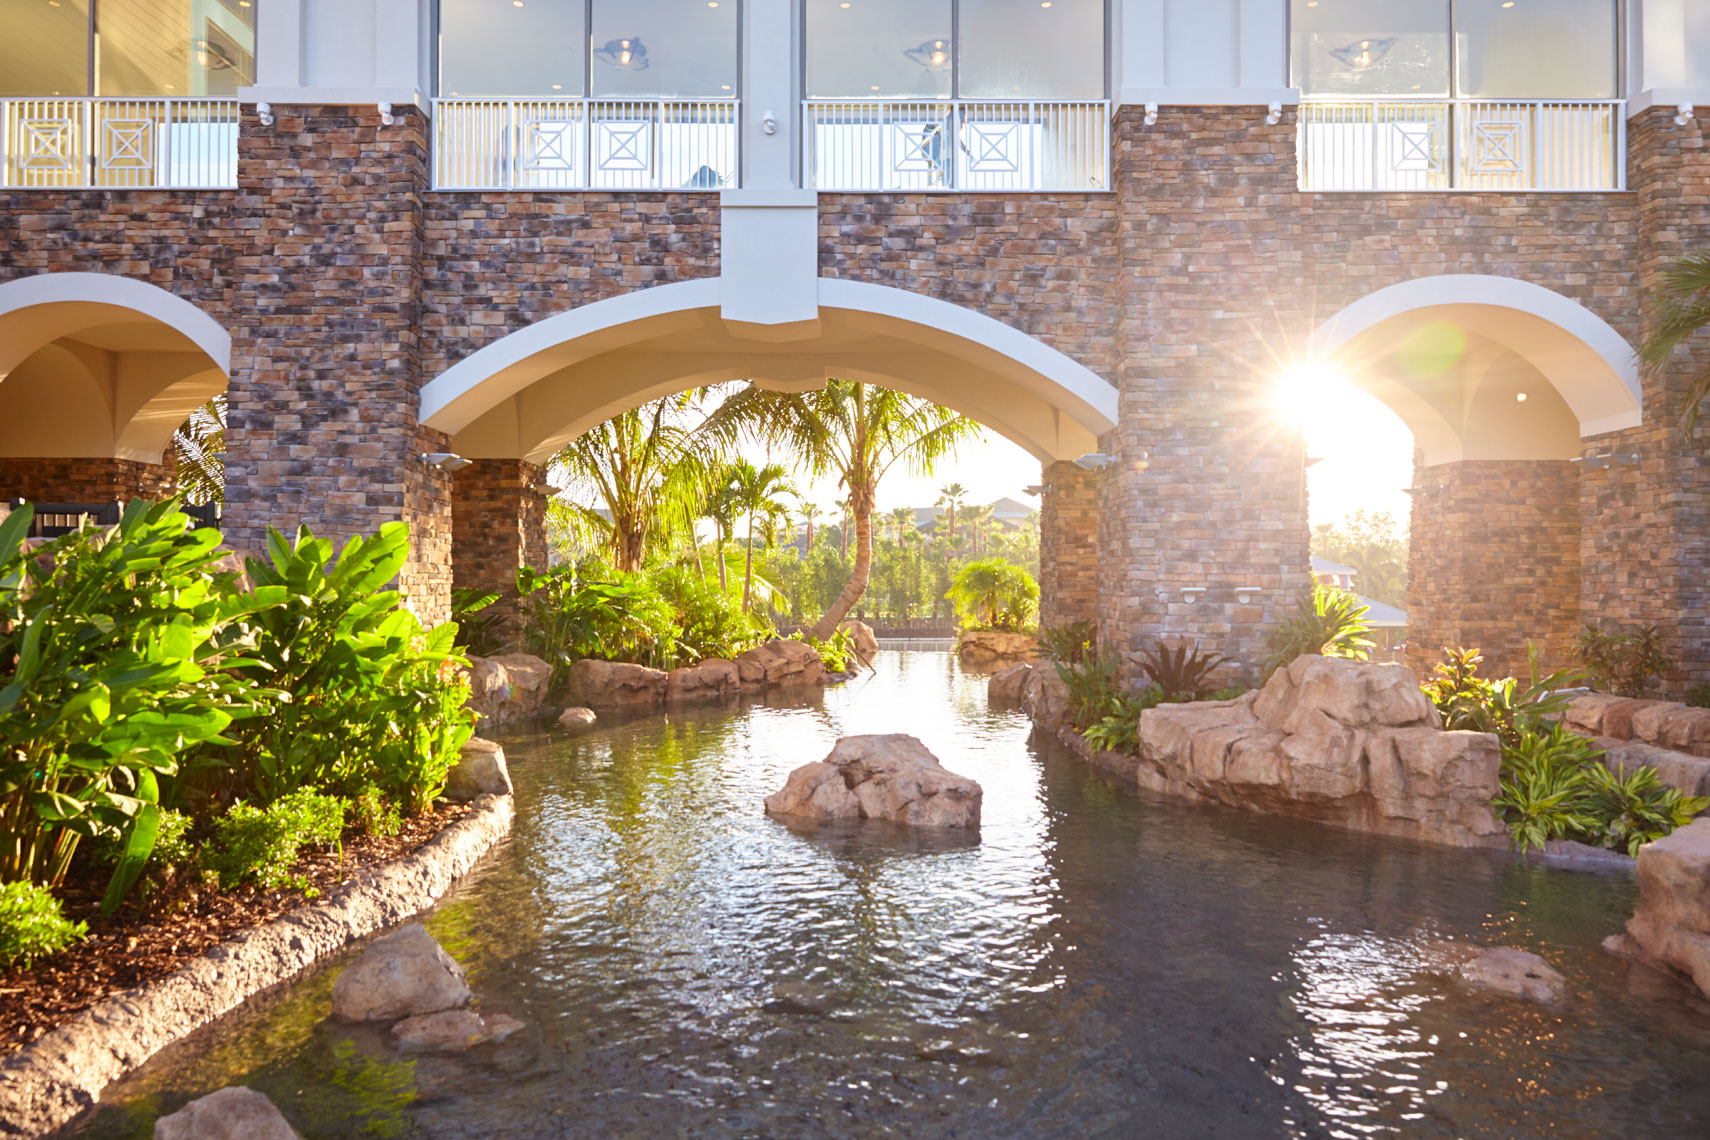 Tropical resort lagoon with bridge and arches at sunset